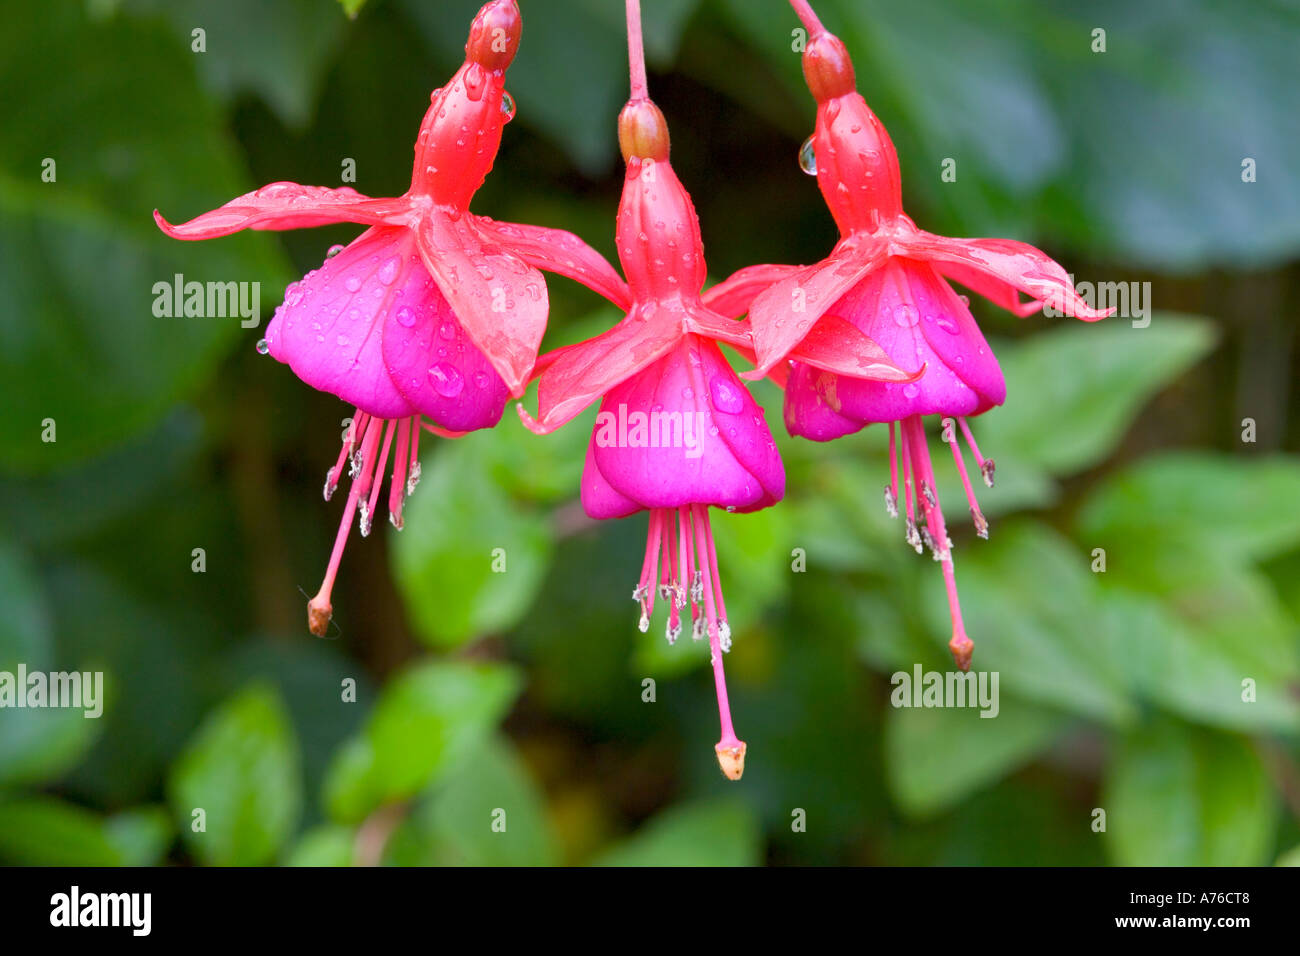 Close up of three Pink fuchsia blooms hanging in a row. - Stock Image